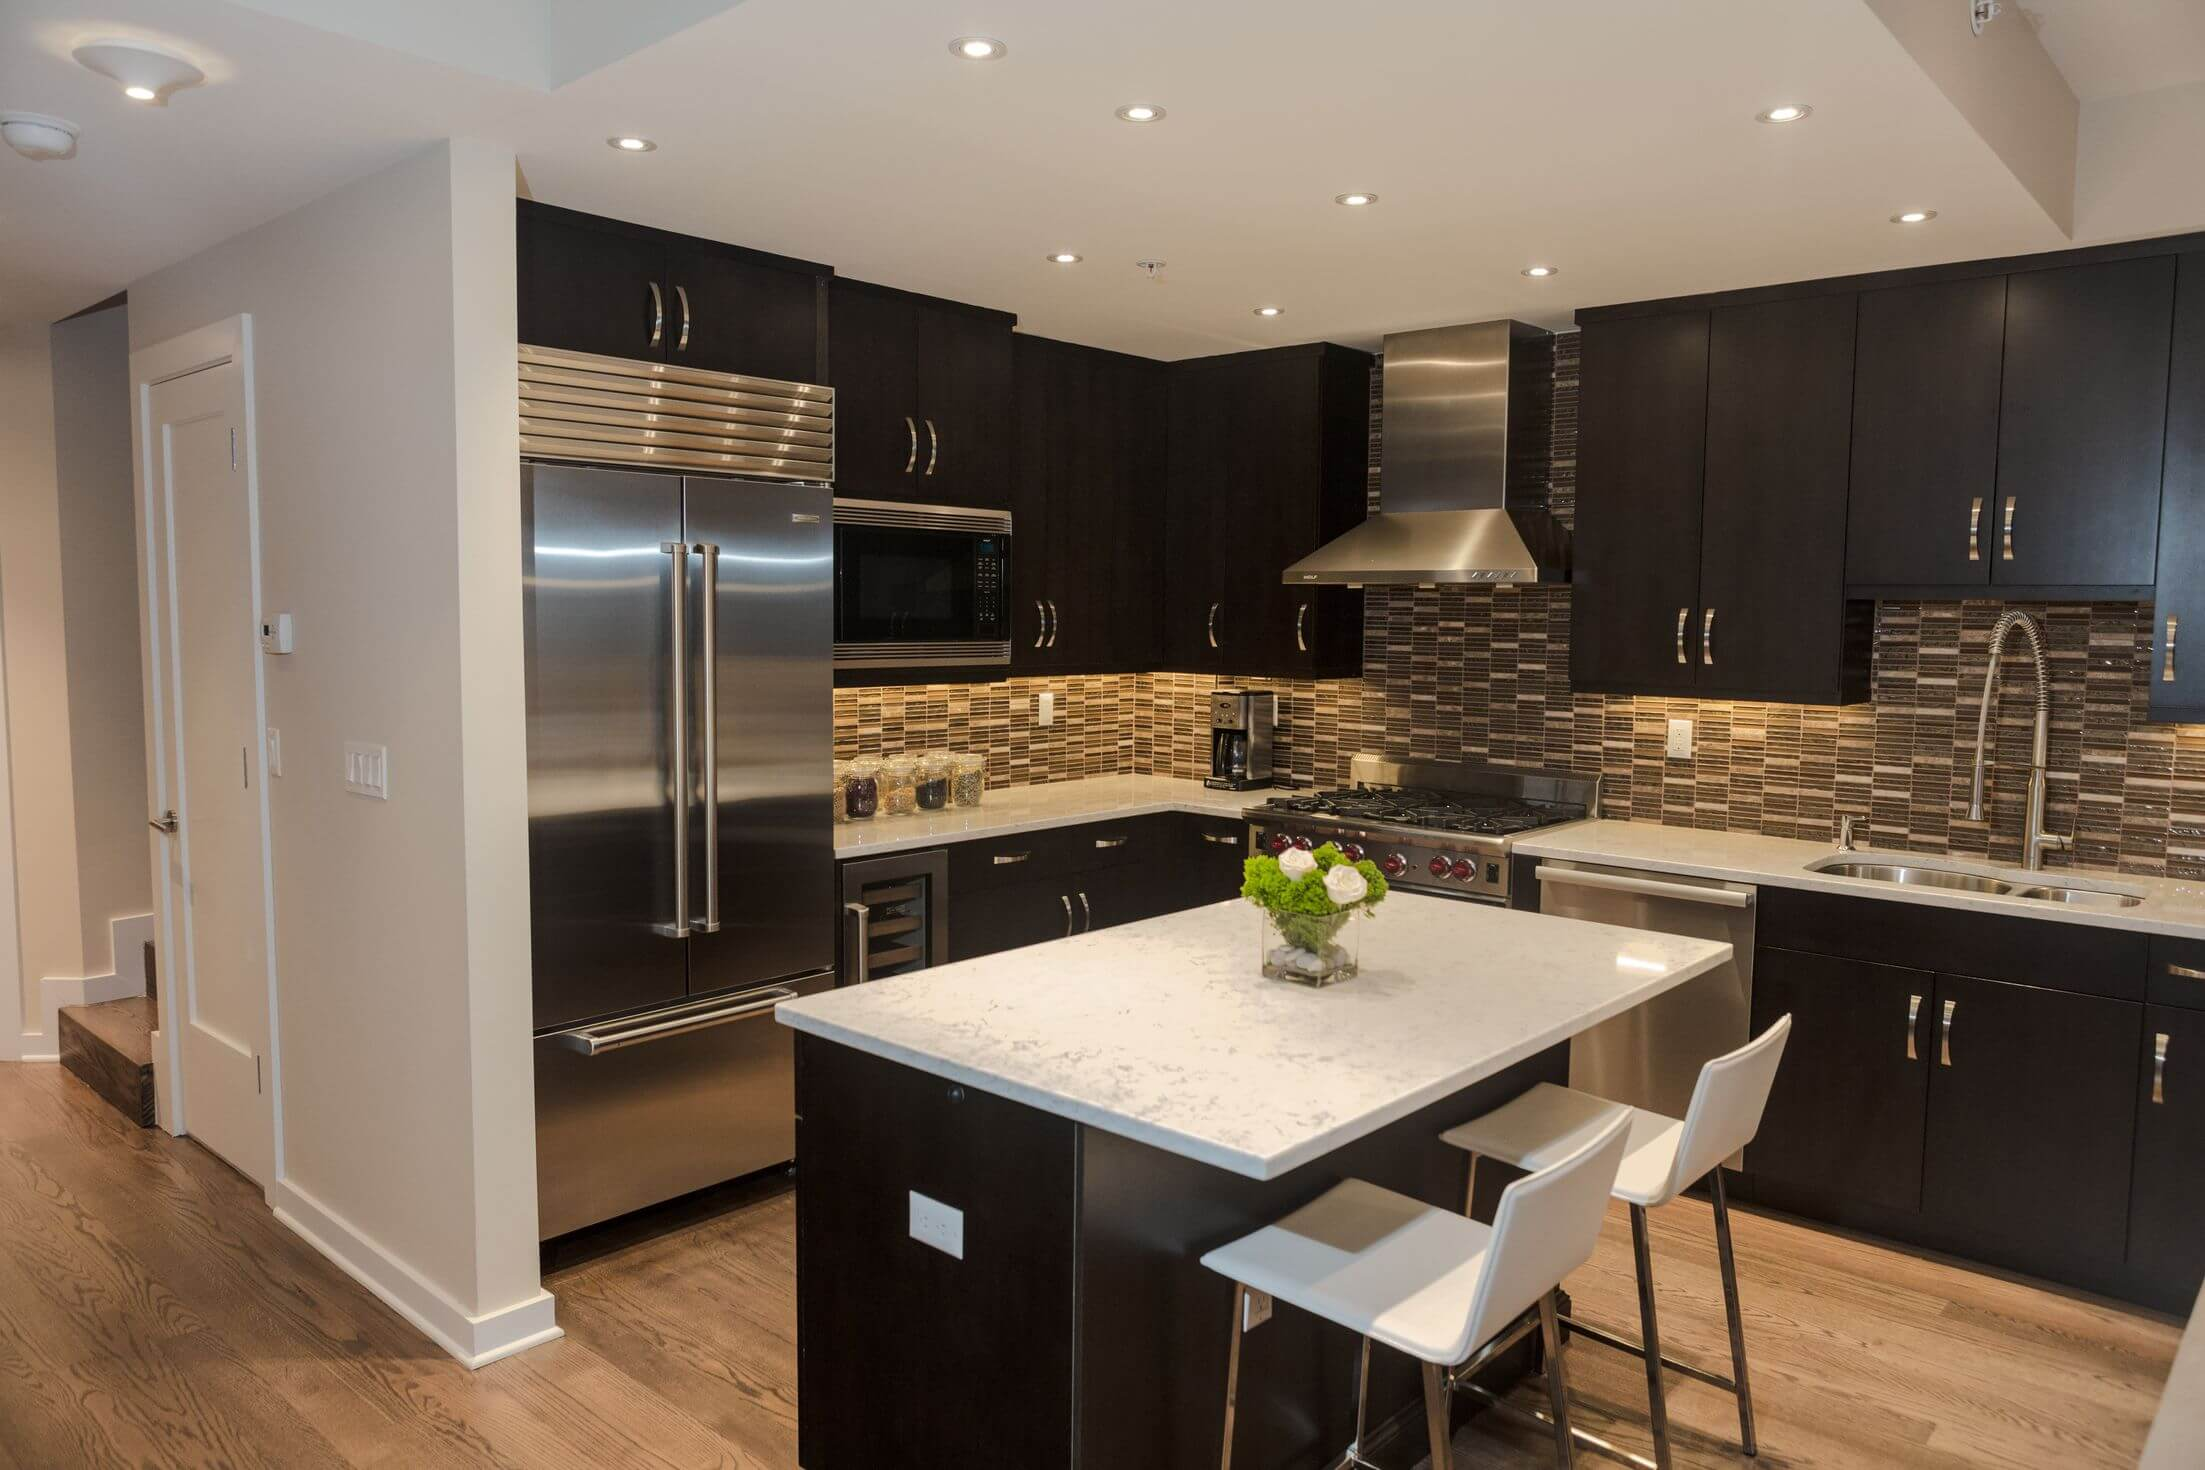 Black Wood Cabinetry And Island Contrast With Patterned Tile Backsplash,  White Marble Countertops, And